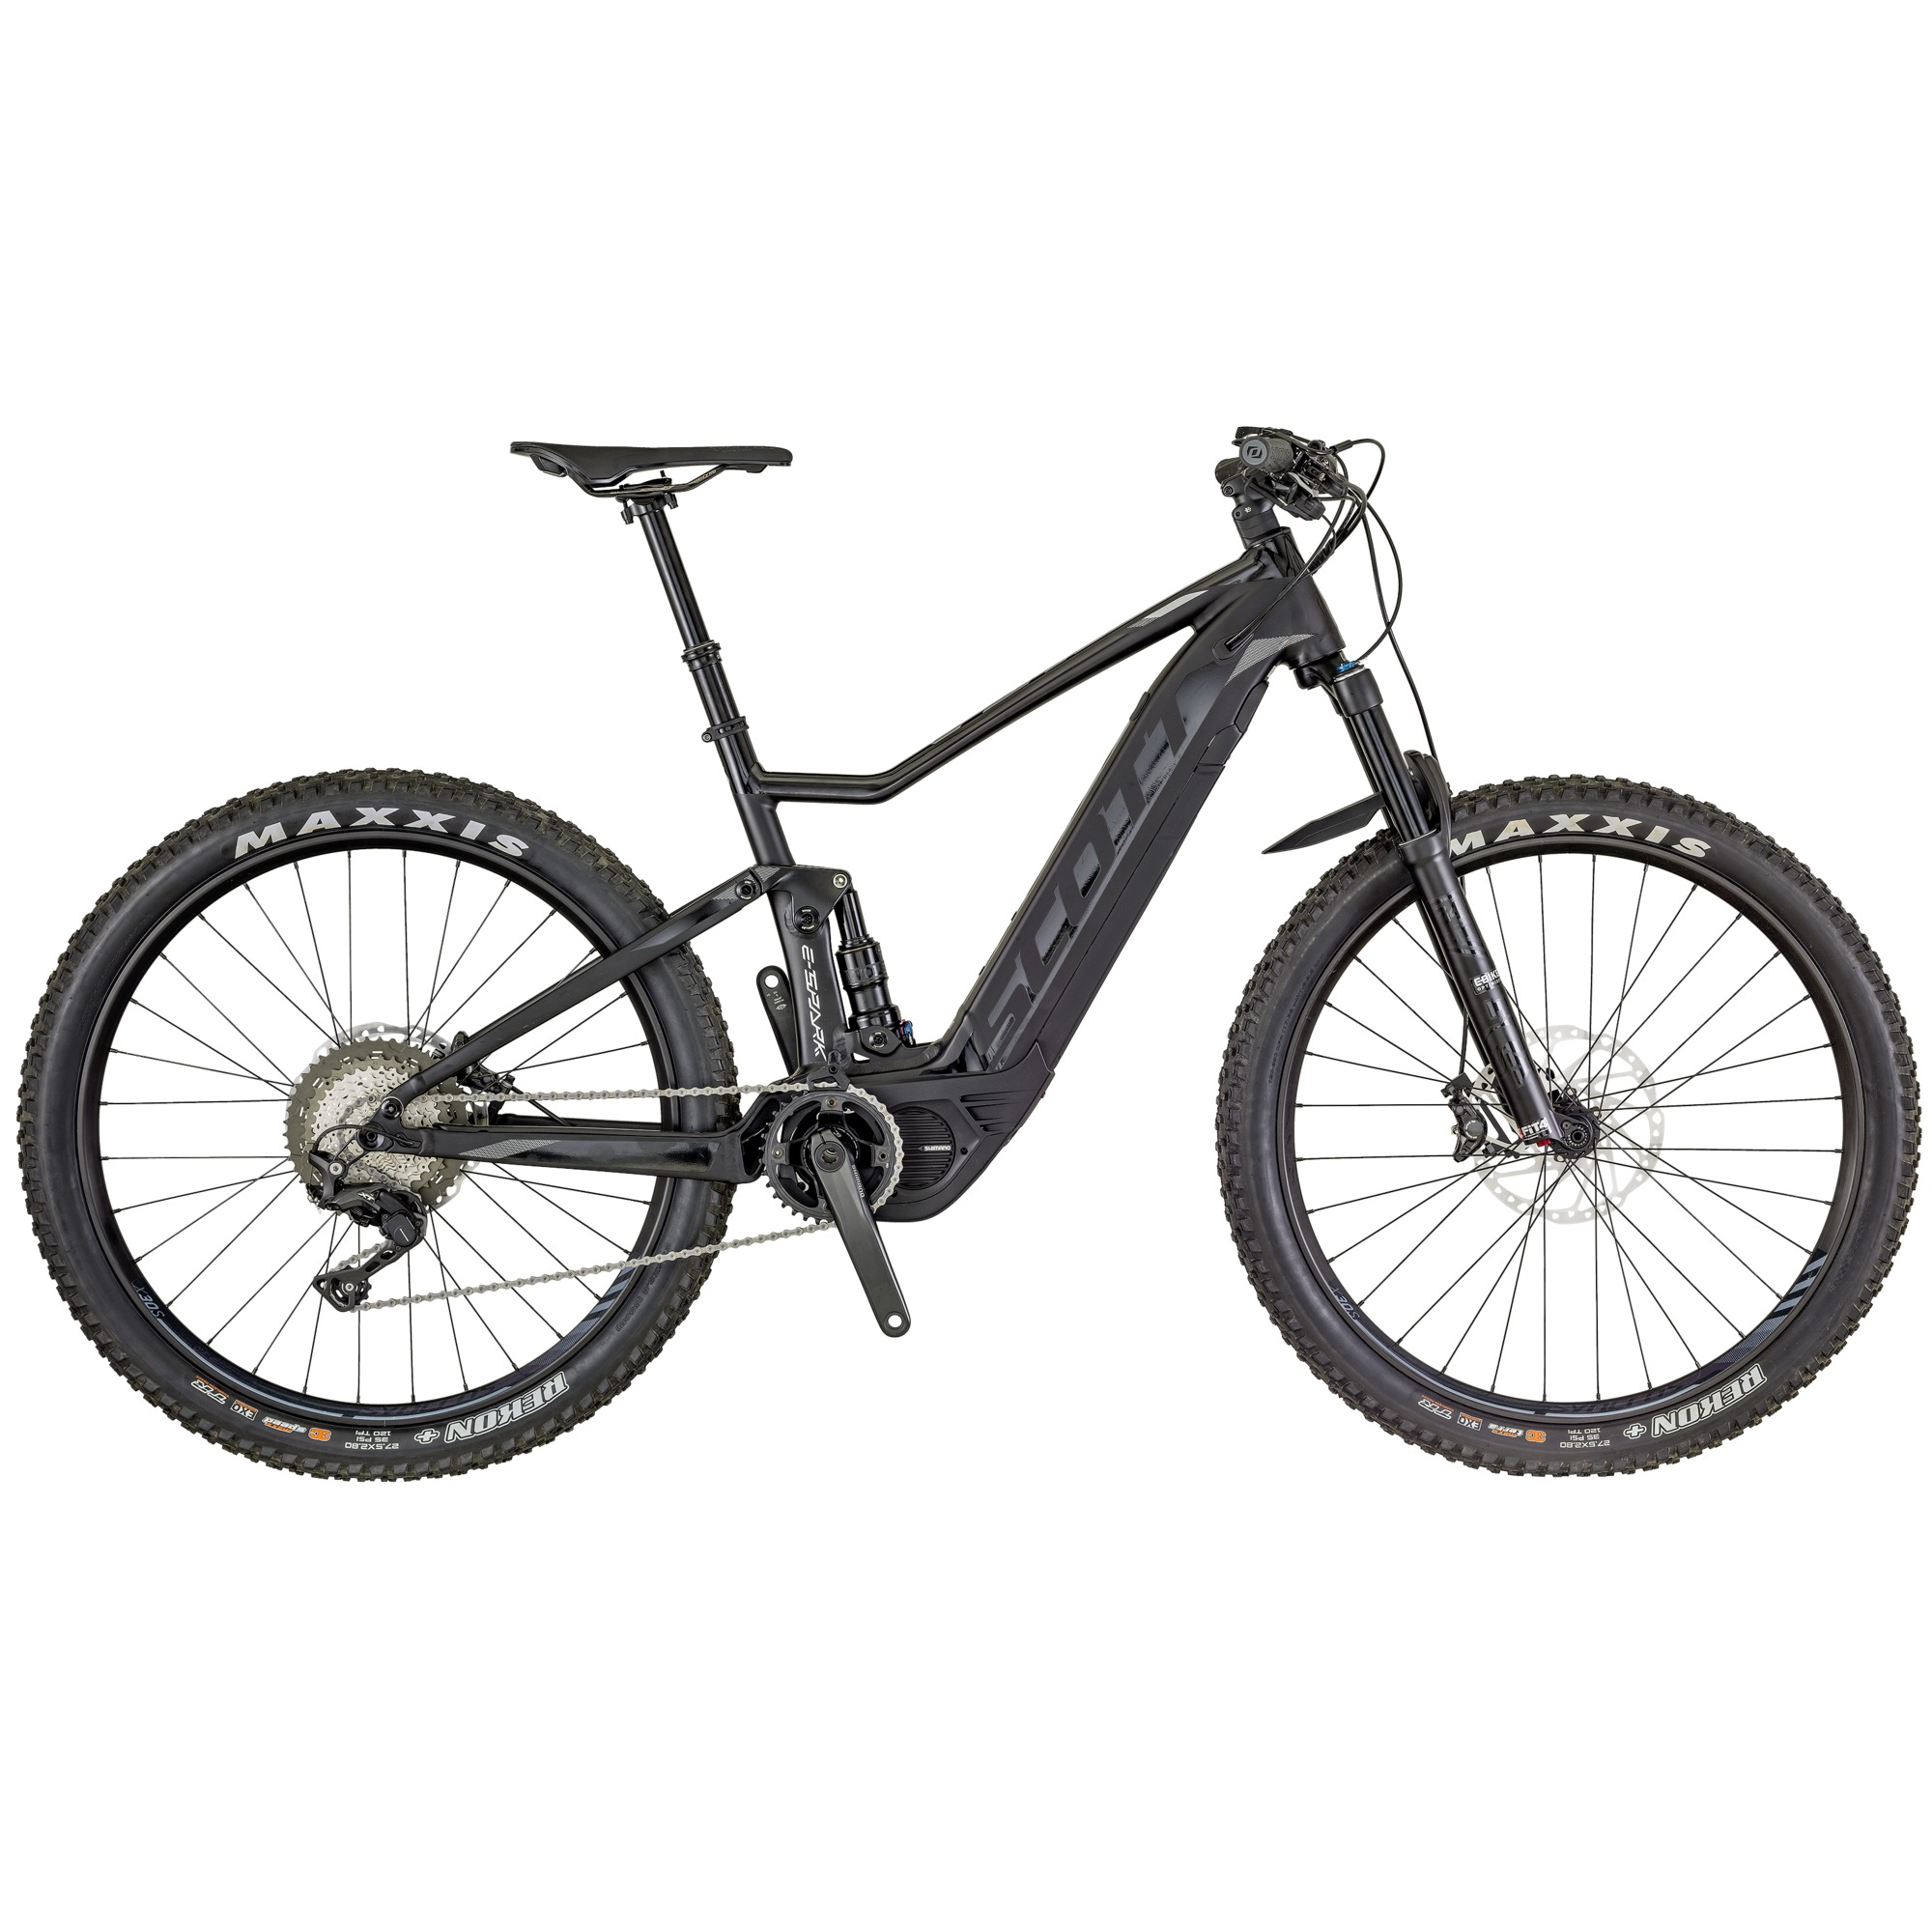 470ae061ba9 SCOTT E-Spark 710 Bike